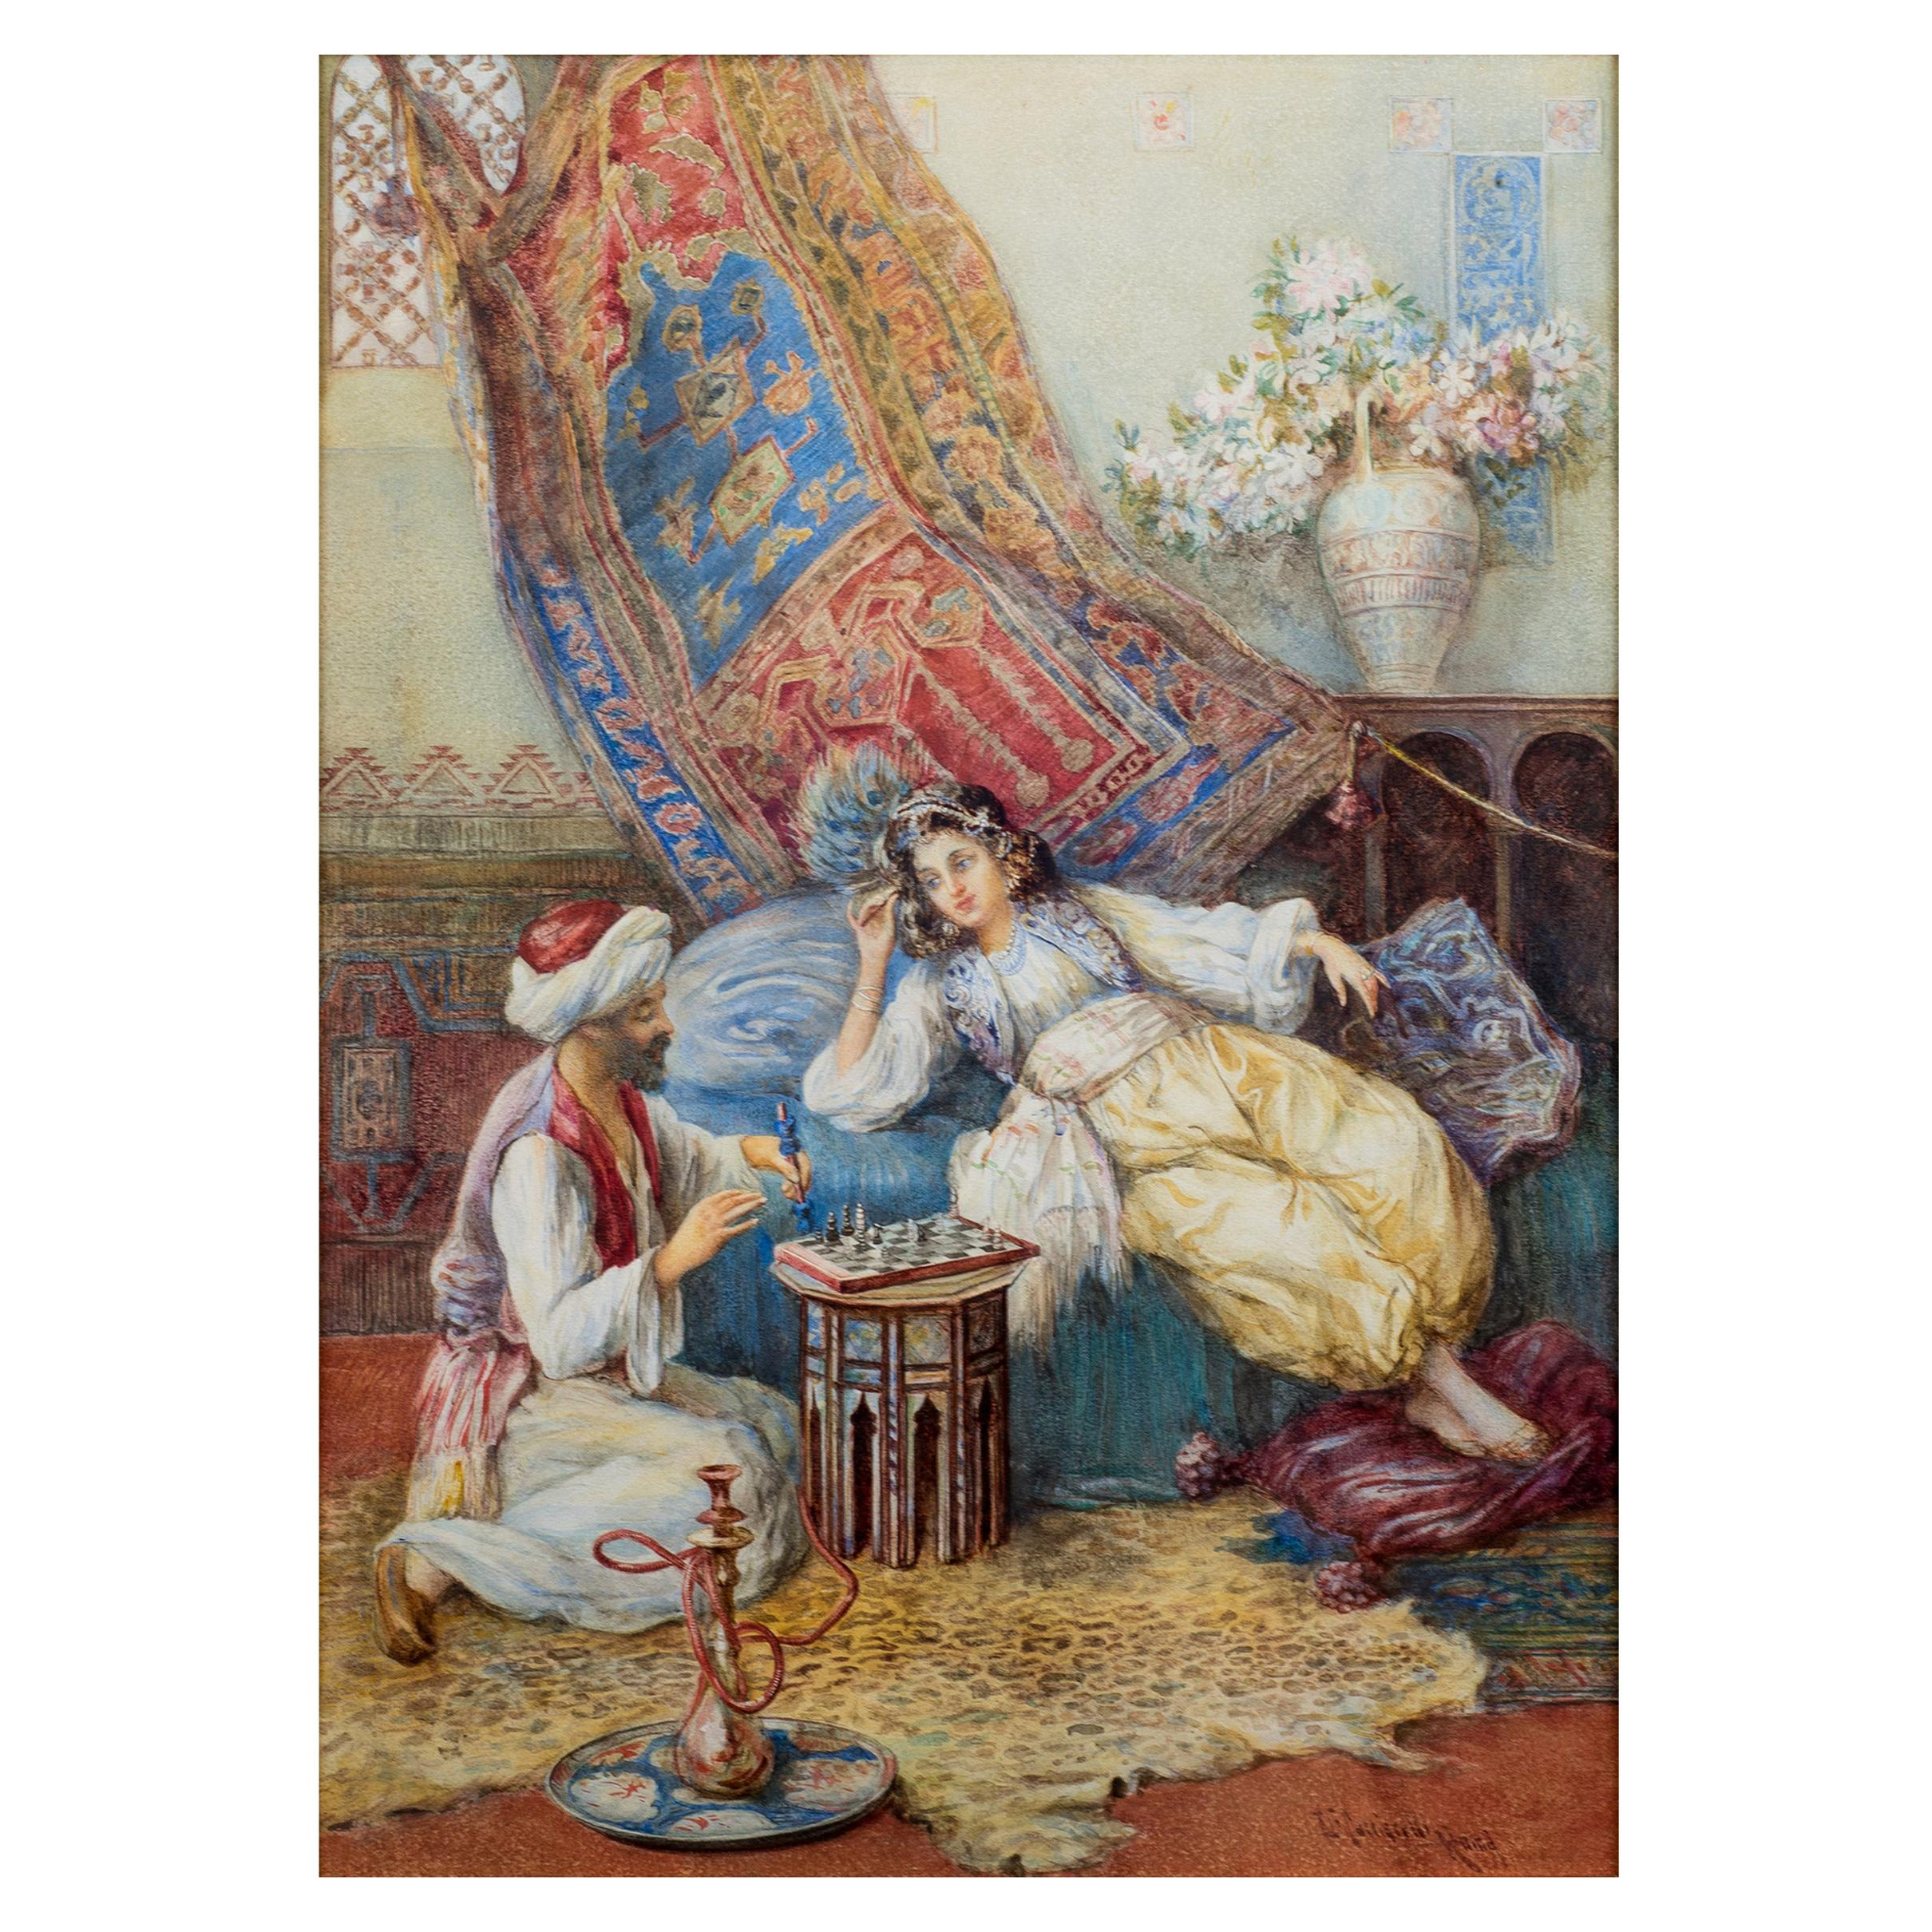 Fine Orientalist Painting Entitled 'The Chess Game' by Umberto Cacciarelli